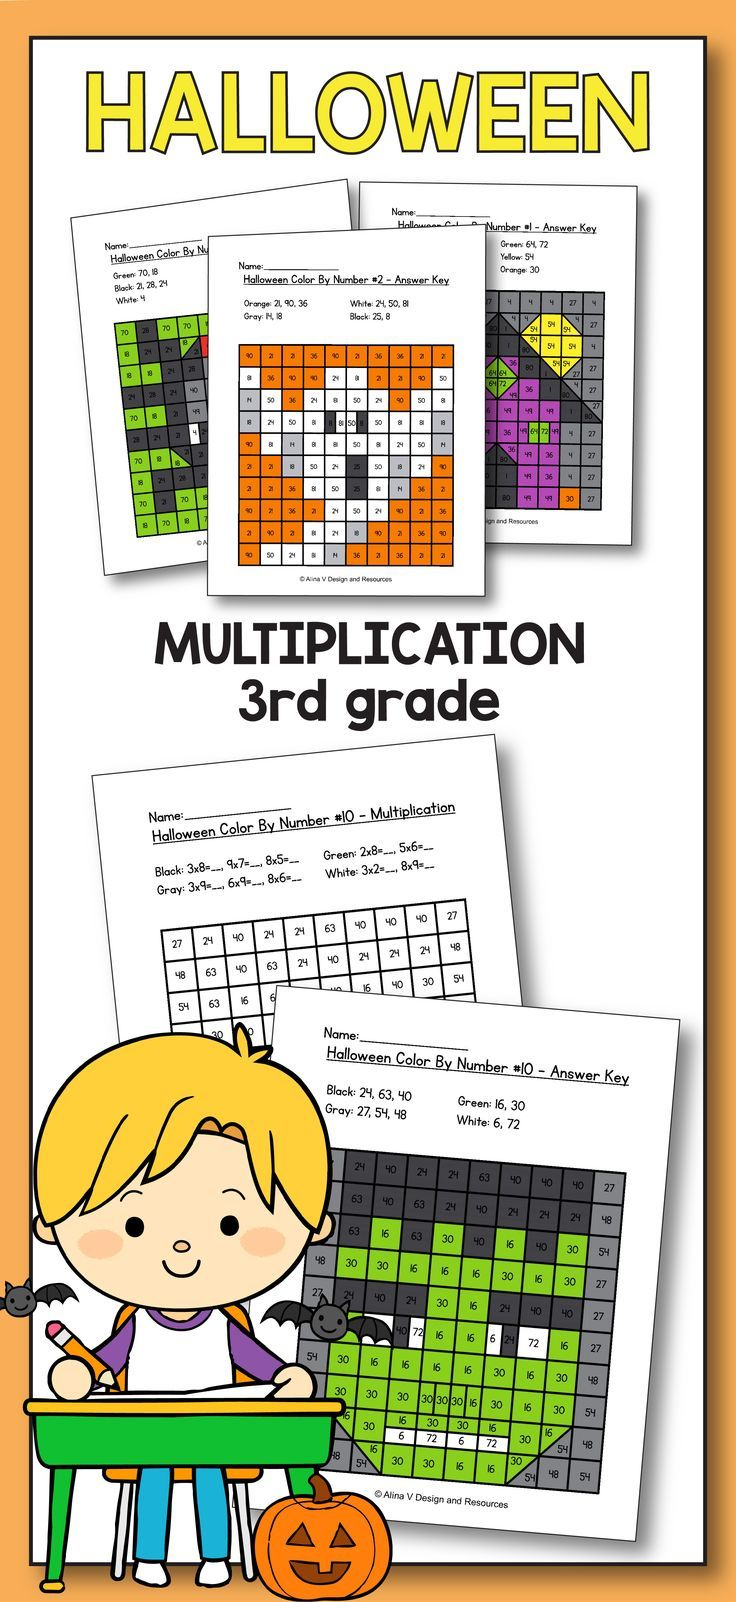 hight resolution of Halloween Multiplication Math Worksheets for 3rd grade kids is fun with  these hundreds c…   Halloween math activities